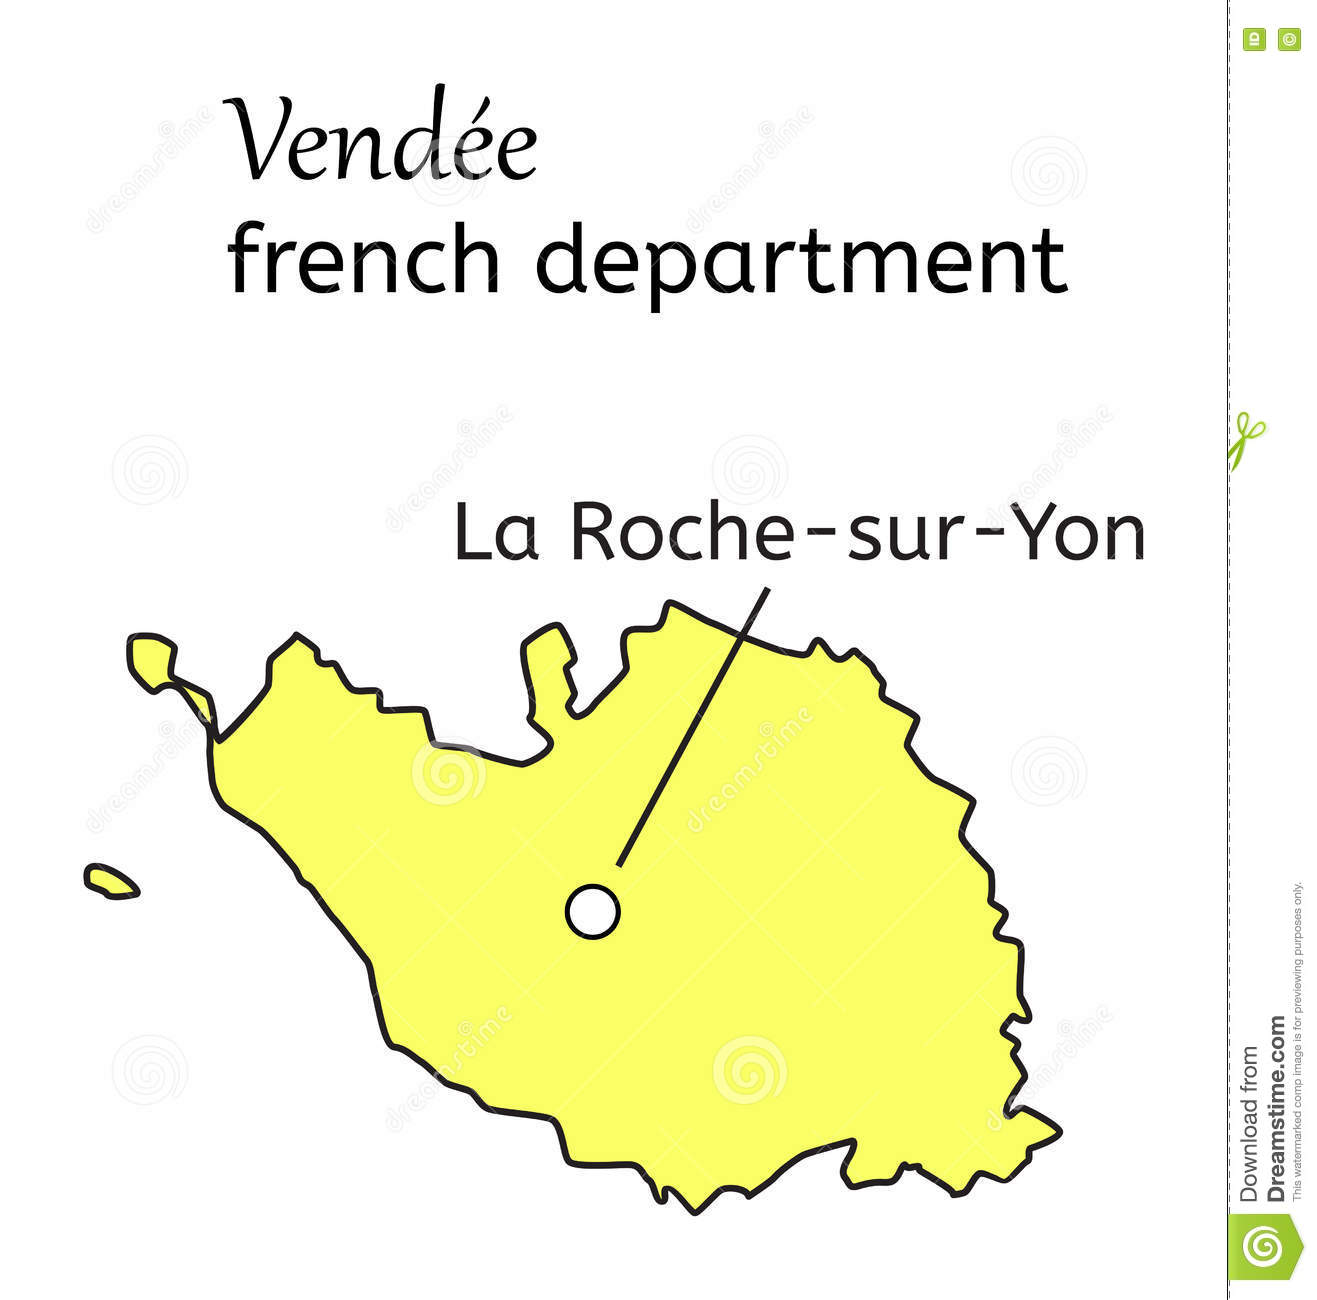 Map Of France Vendee Region.Vendee French Department Map Stock Vector Illustration Of